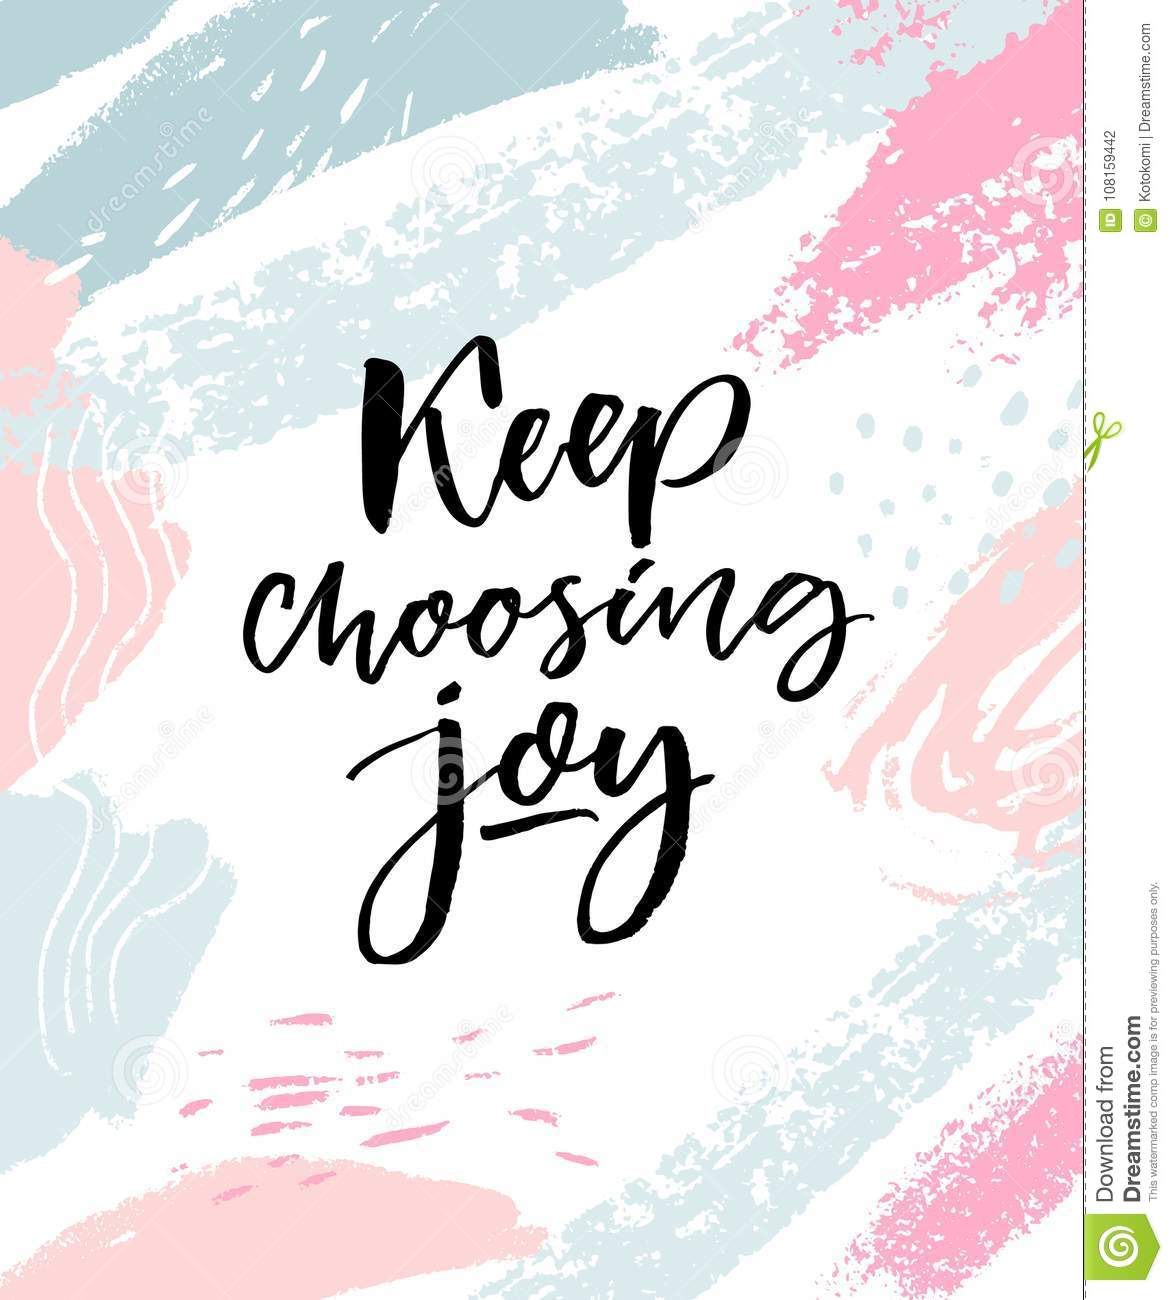 Keep choosing joy. Positive inspirational quote. Brush calligraphy on pink and blue pastel strokes.